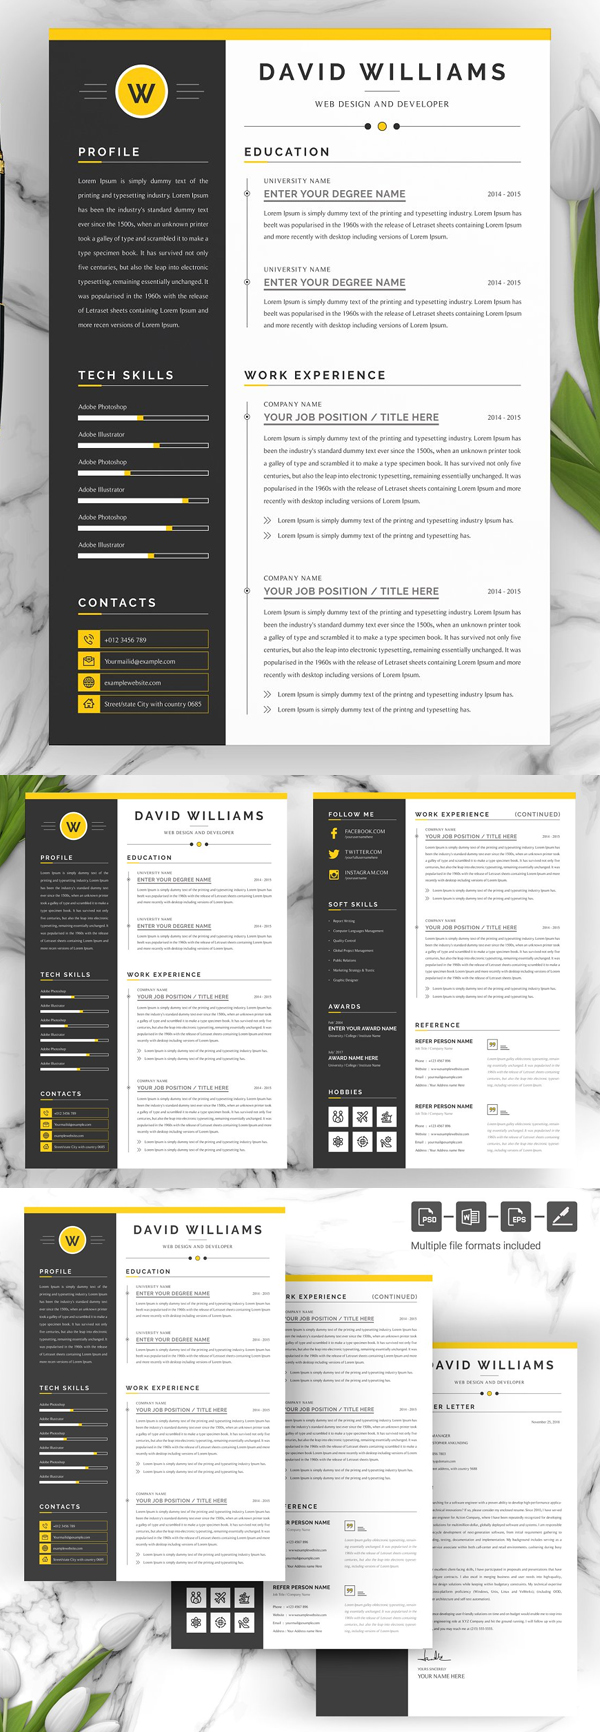 Word Resume & Cover Letter Template